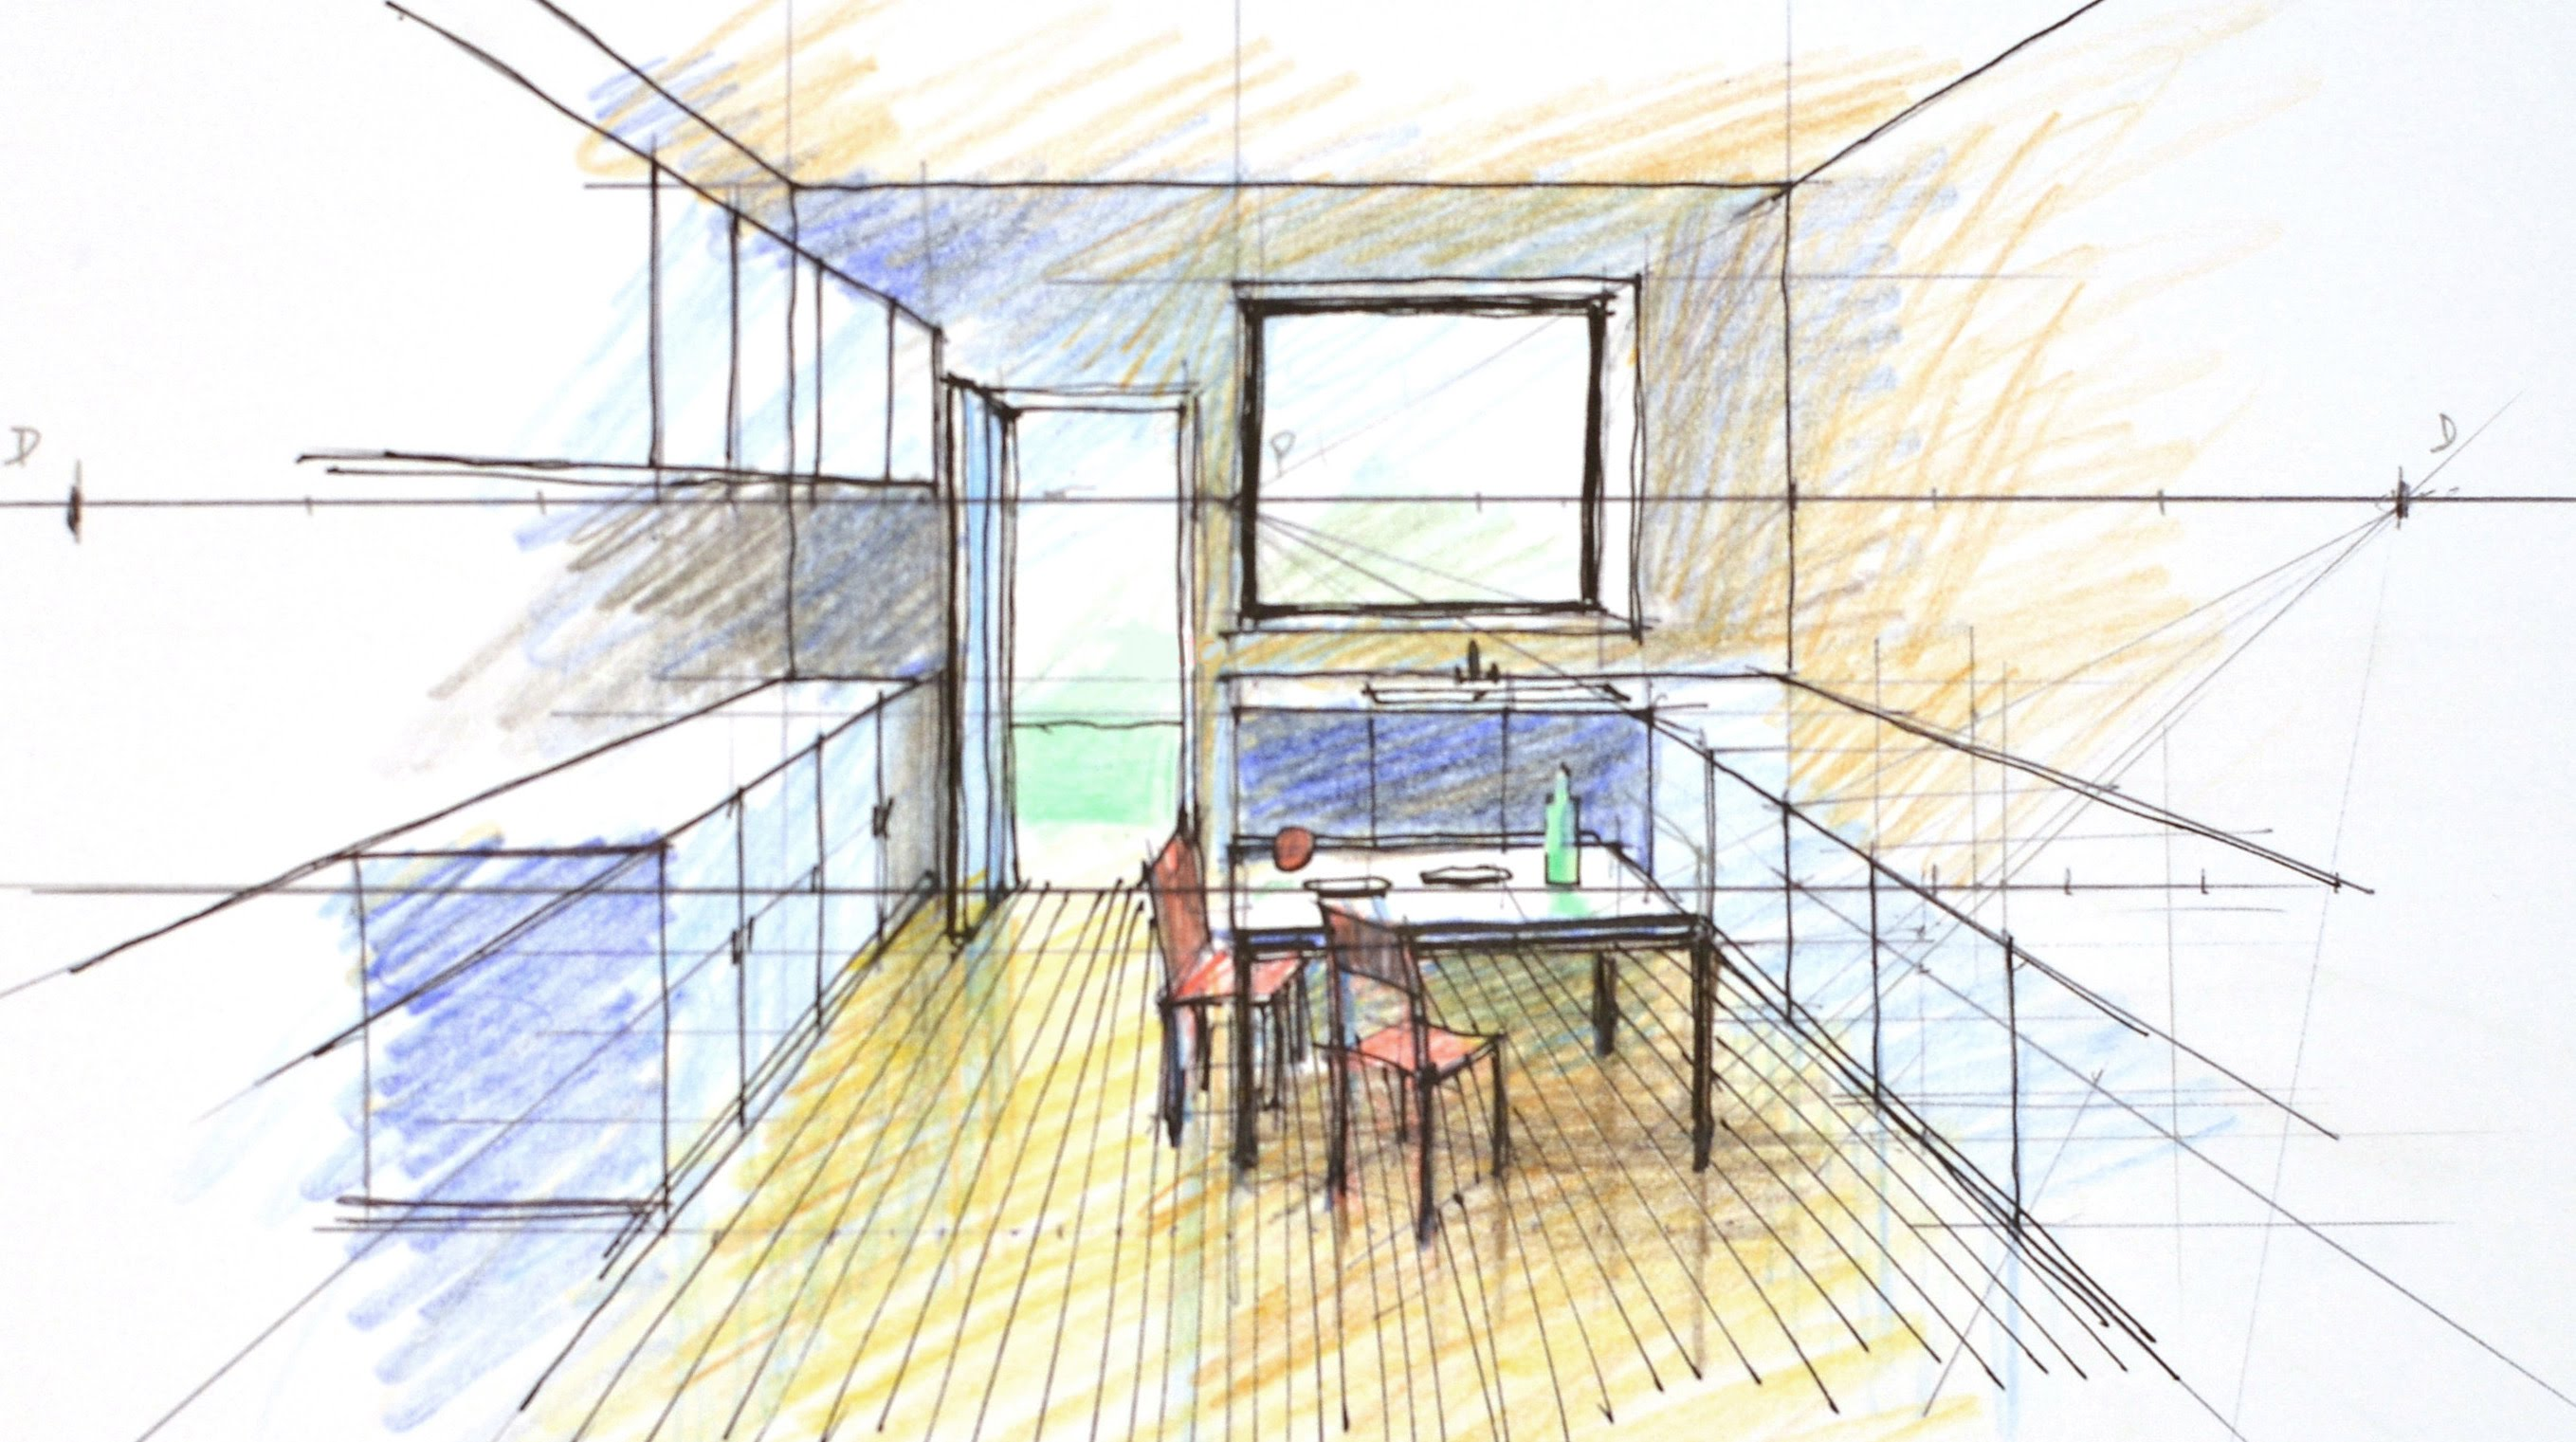 Interior Perspective Drawing at GetDrawings.com | Free for ...